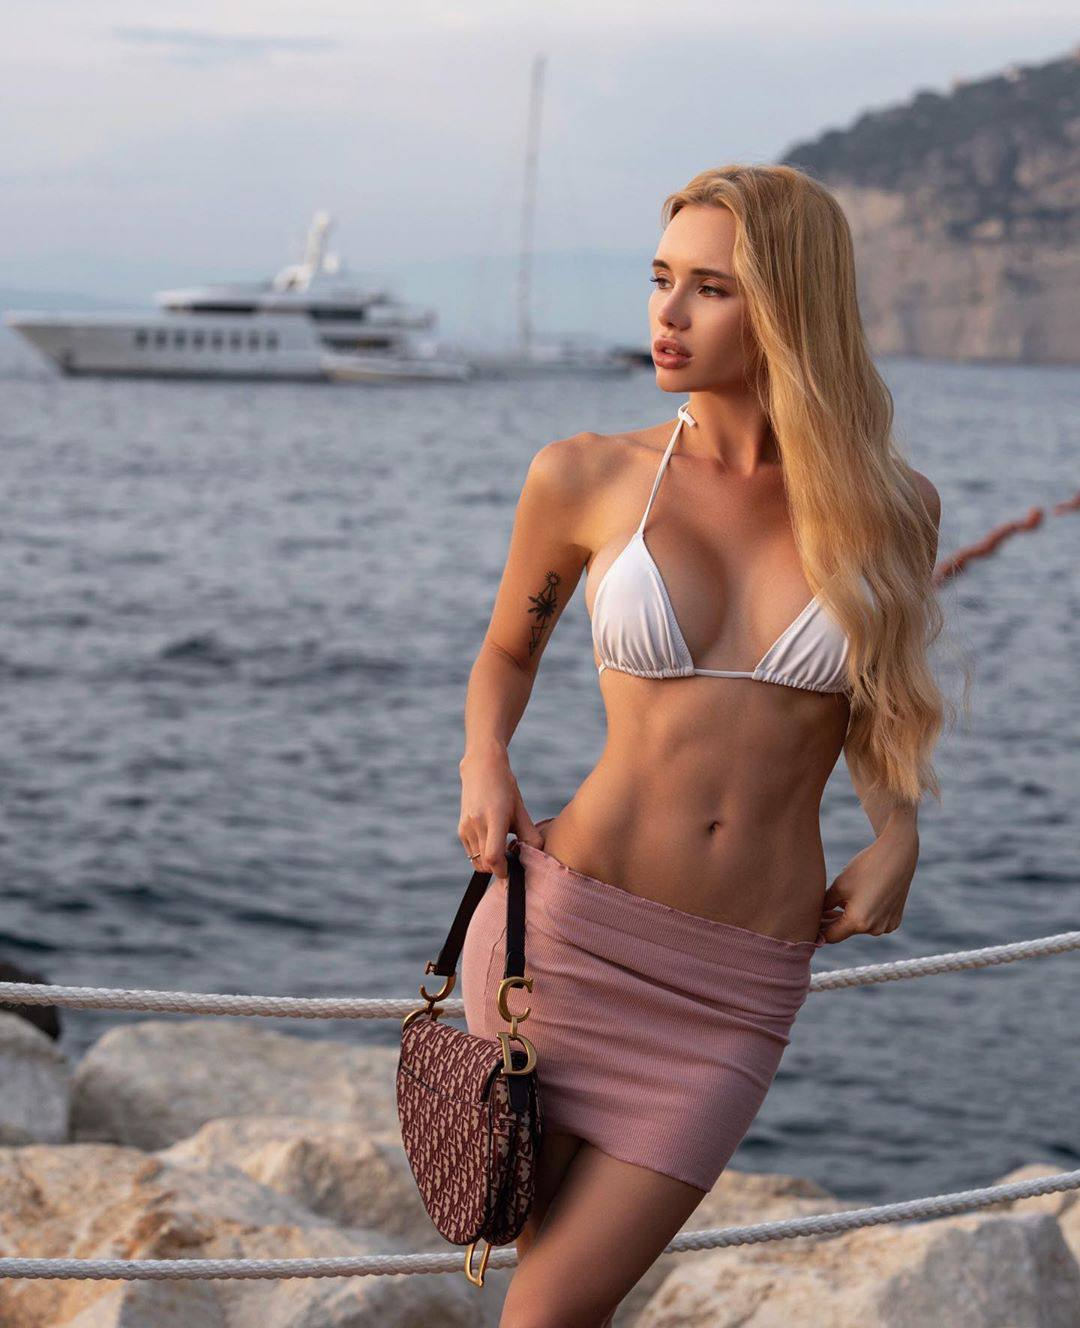 Olya Abramovich – Hot Boobs In Topless Beach Photoshoot (nsfw) 0056